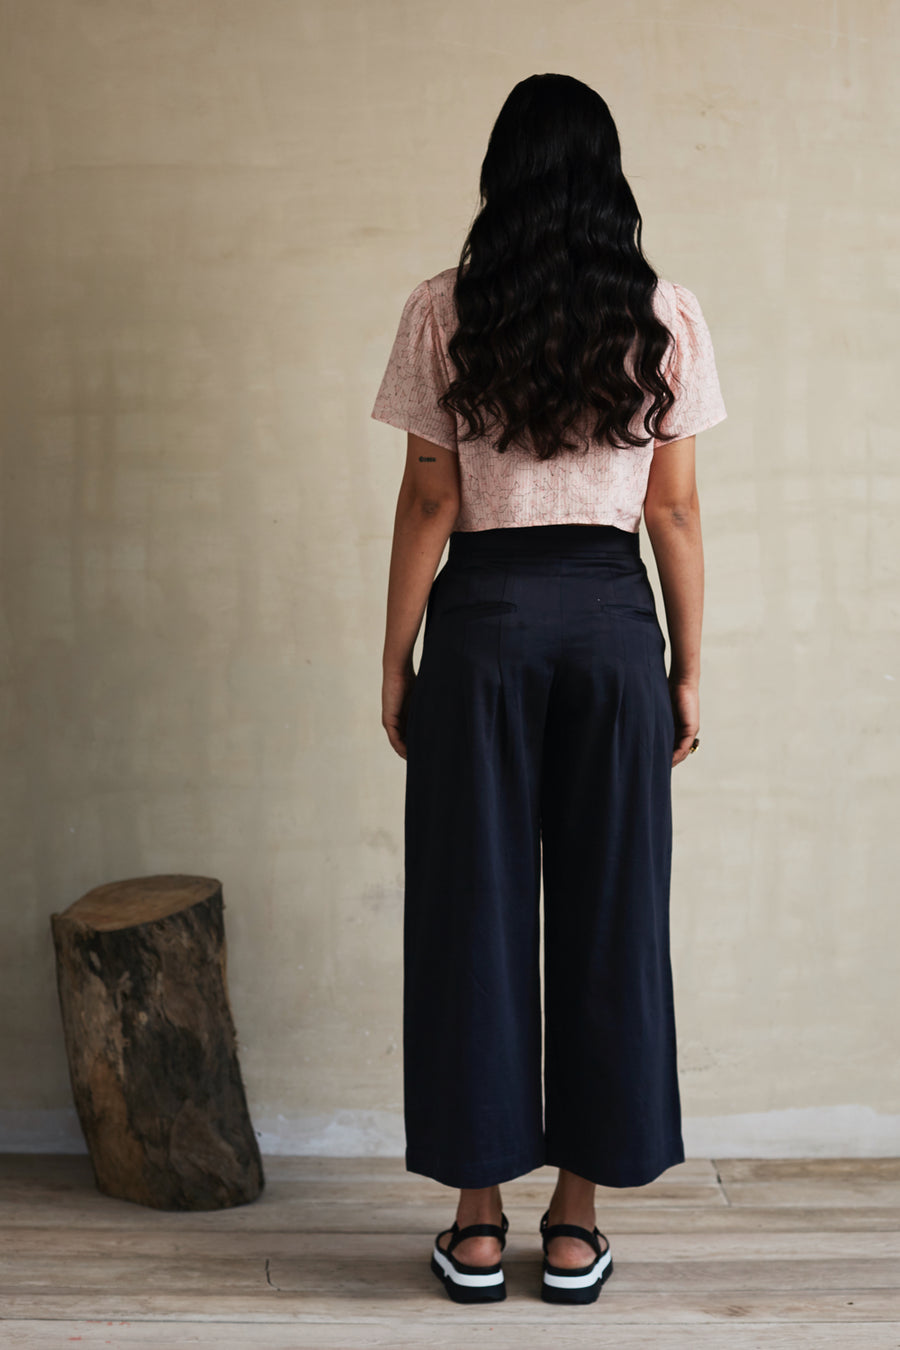 Plain and Simple Pleated Pants - Ethical made fashion - onlyethikal